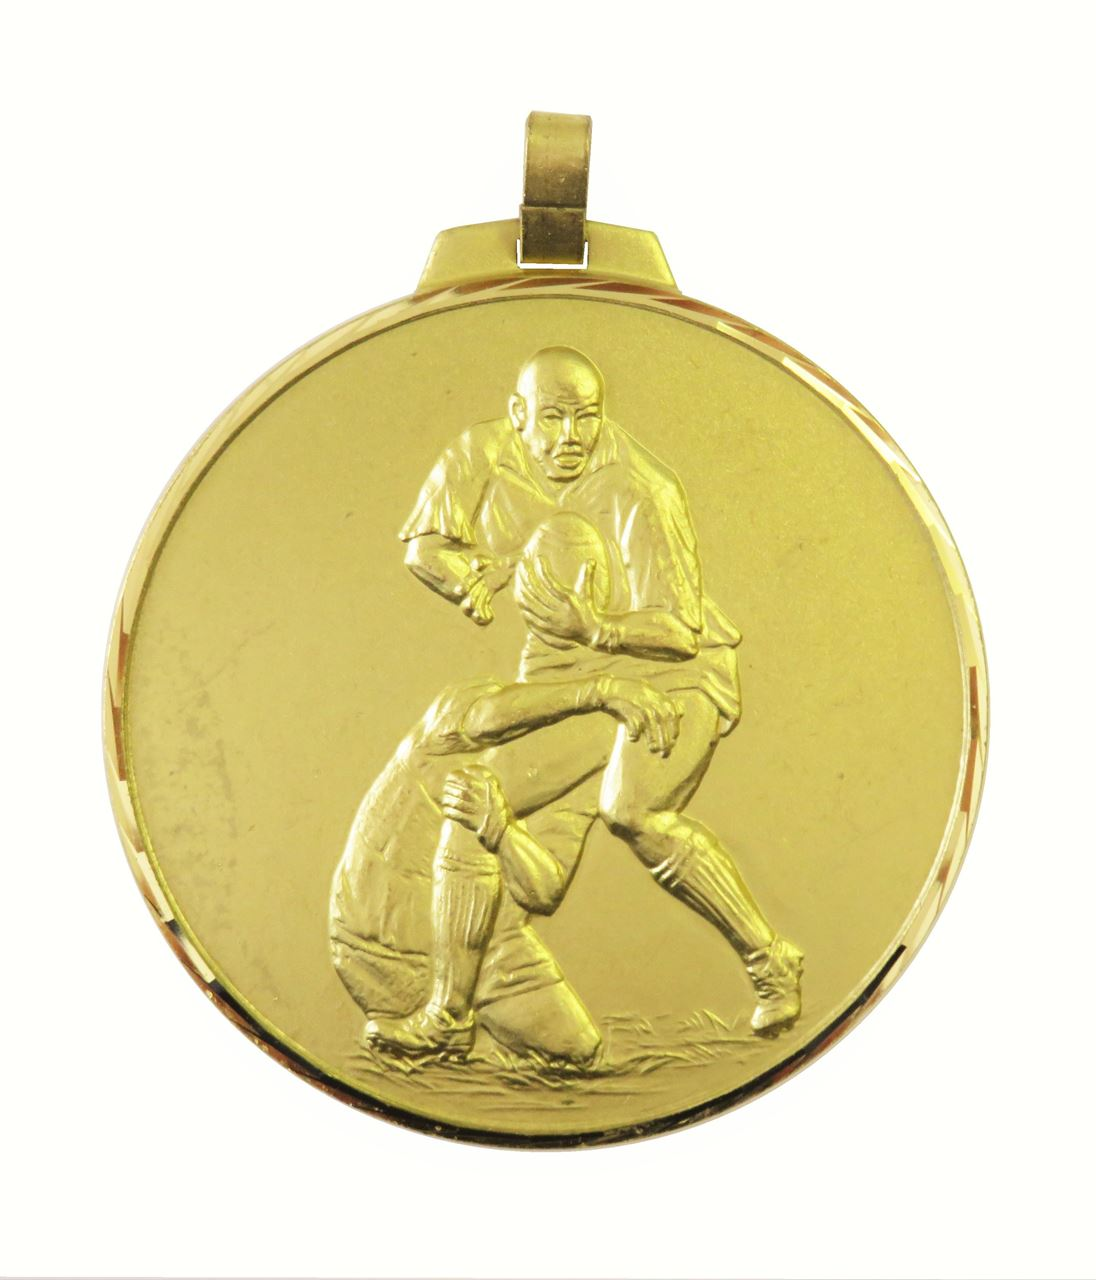 Gold Faceted Rugby Medal (size: 42mm, 52mm and 70mm) - 402F